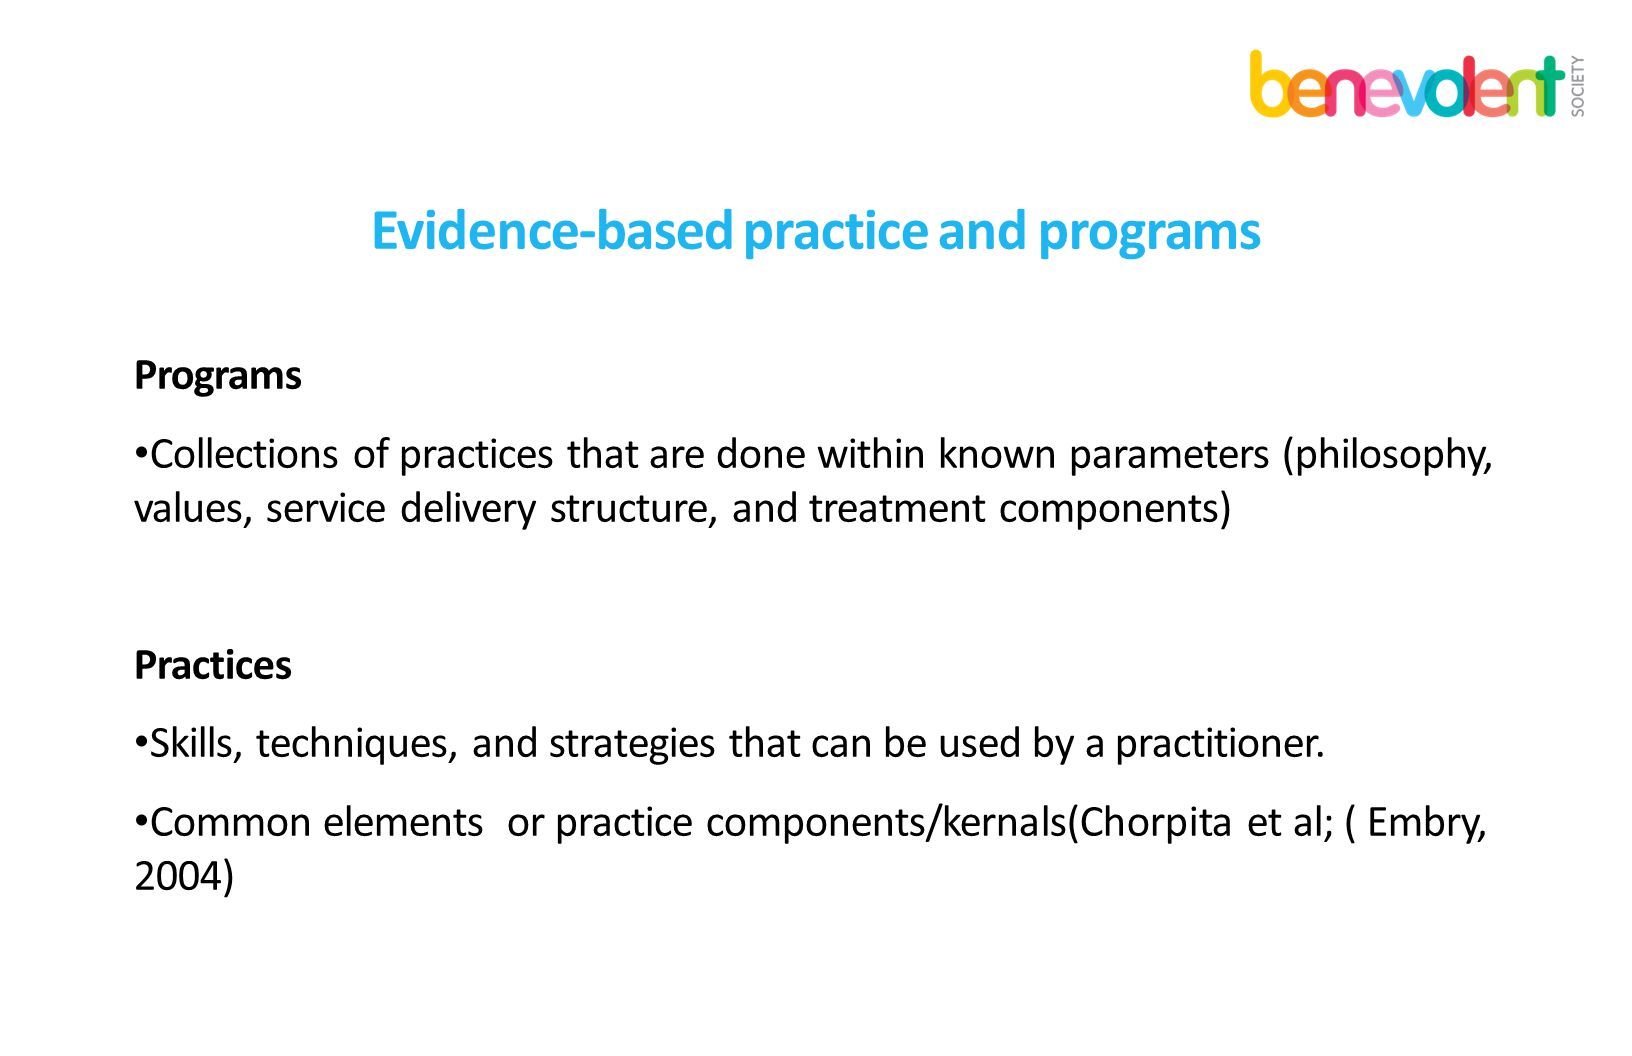 Evidence-based practice and programs